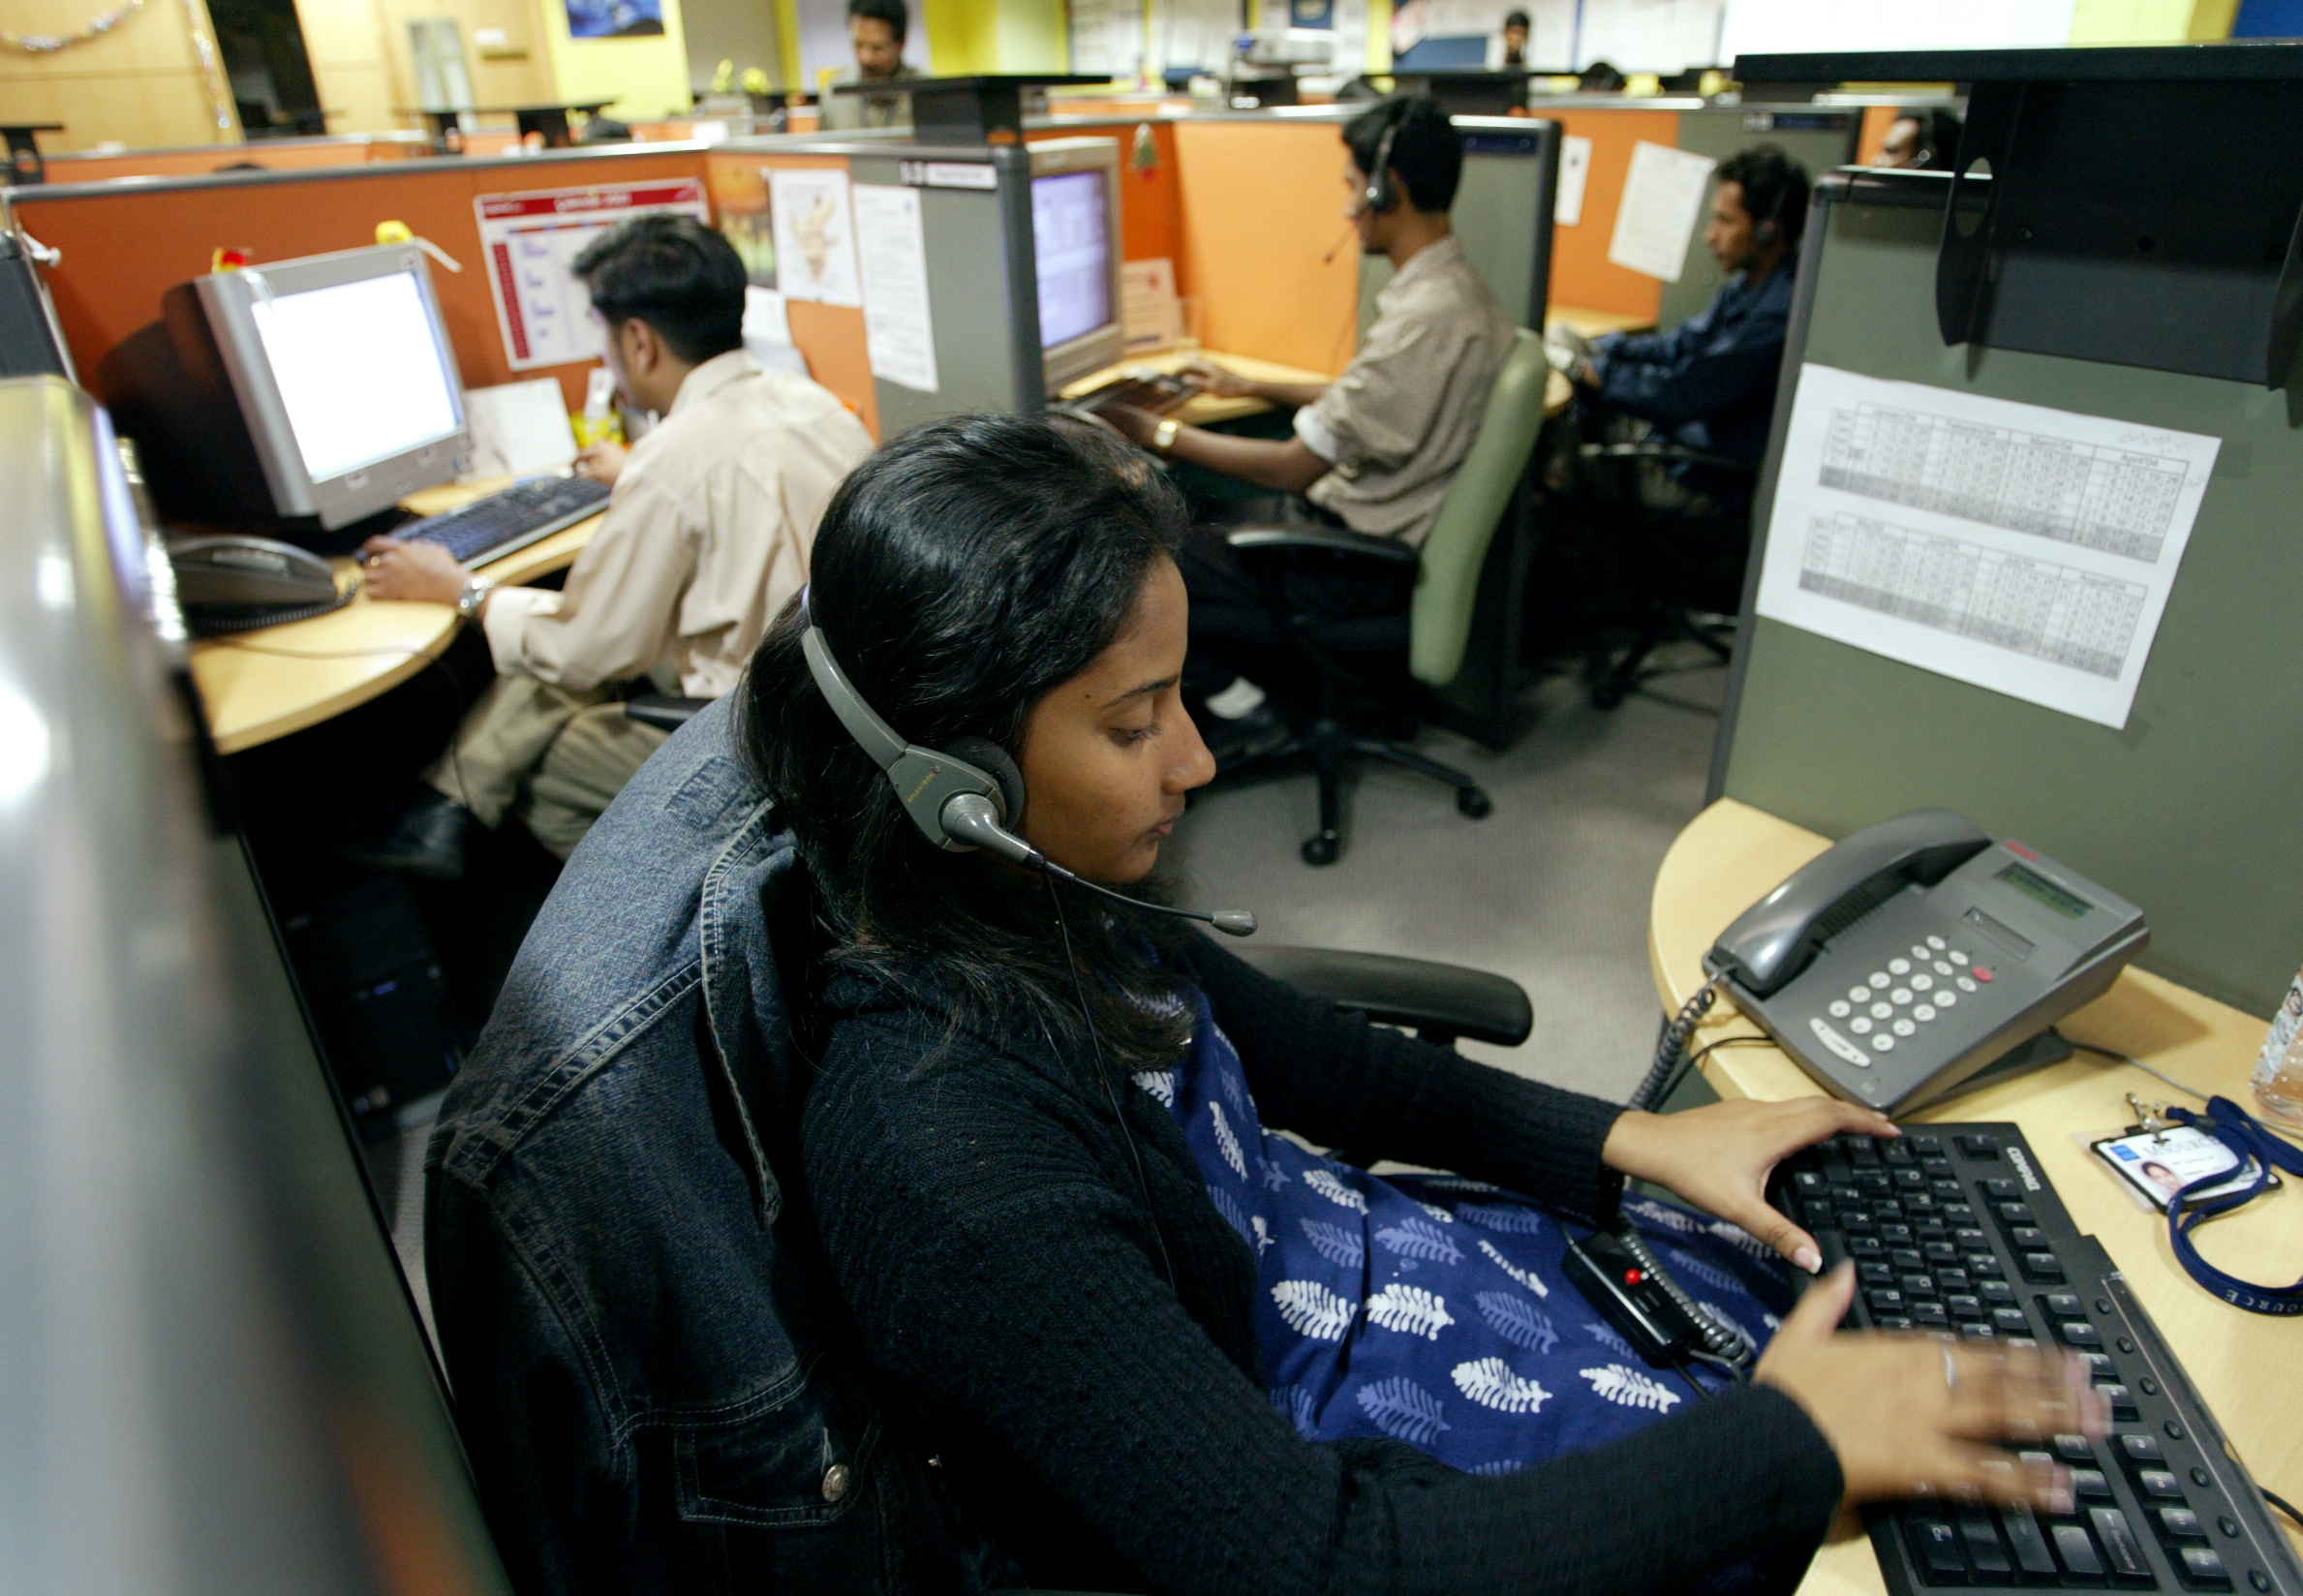 Four out of five employees in India looking to switch jobs within a year